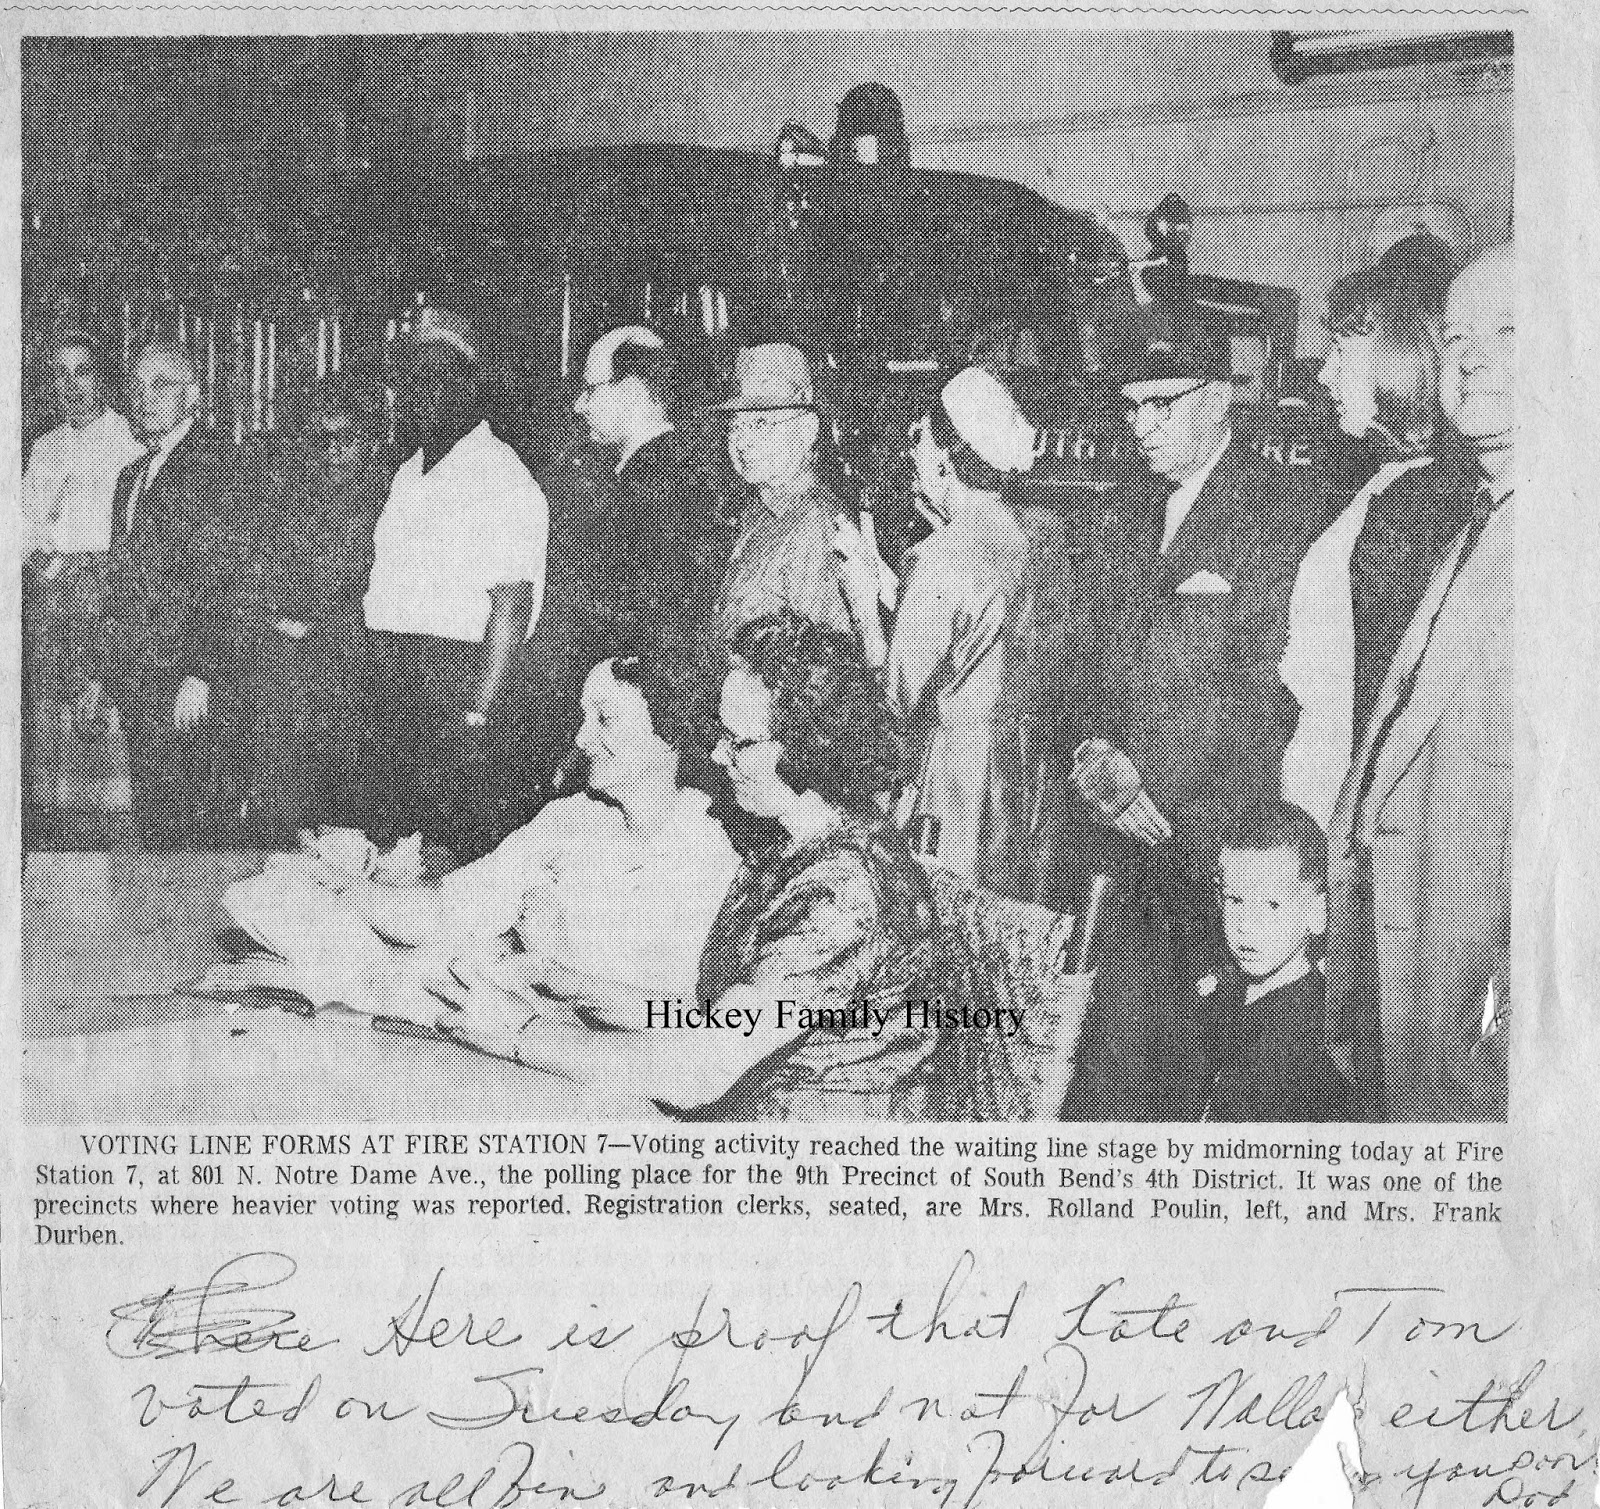 street in south bend indiana from 1917 until the 1960s the newspaper clipping below shows them standing in line to vote sometime in the early 1960s